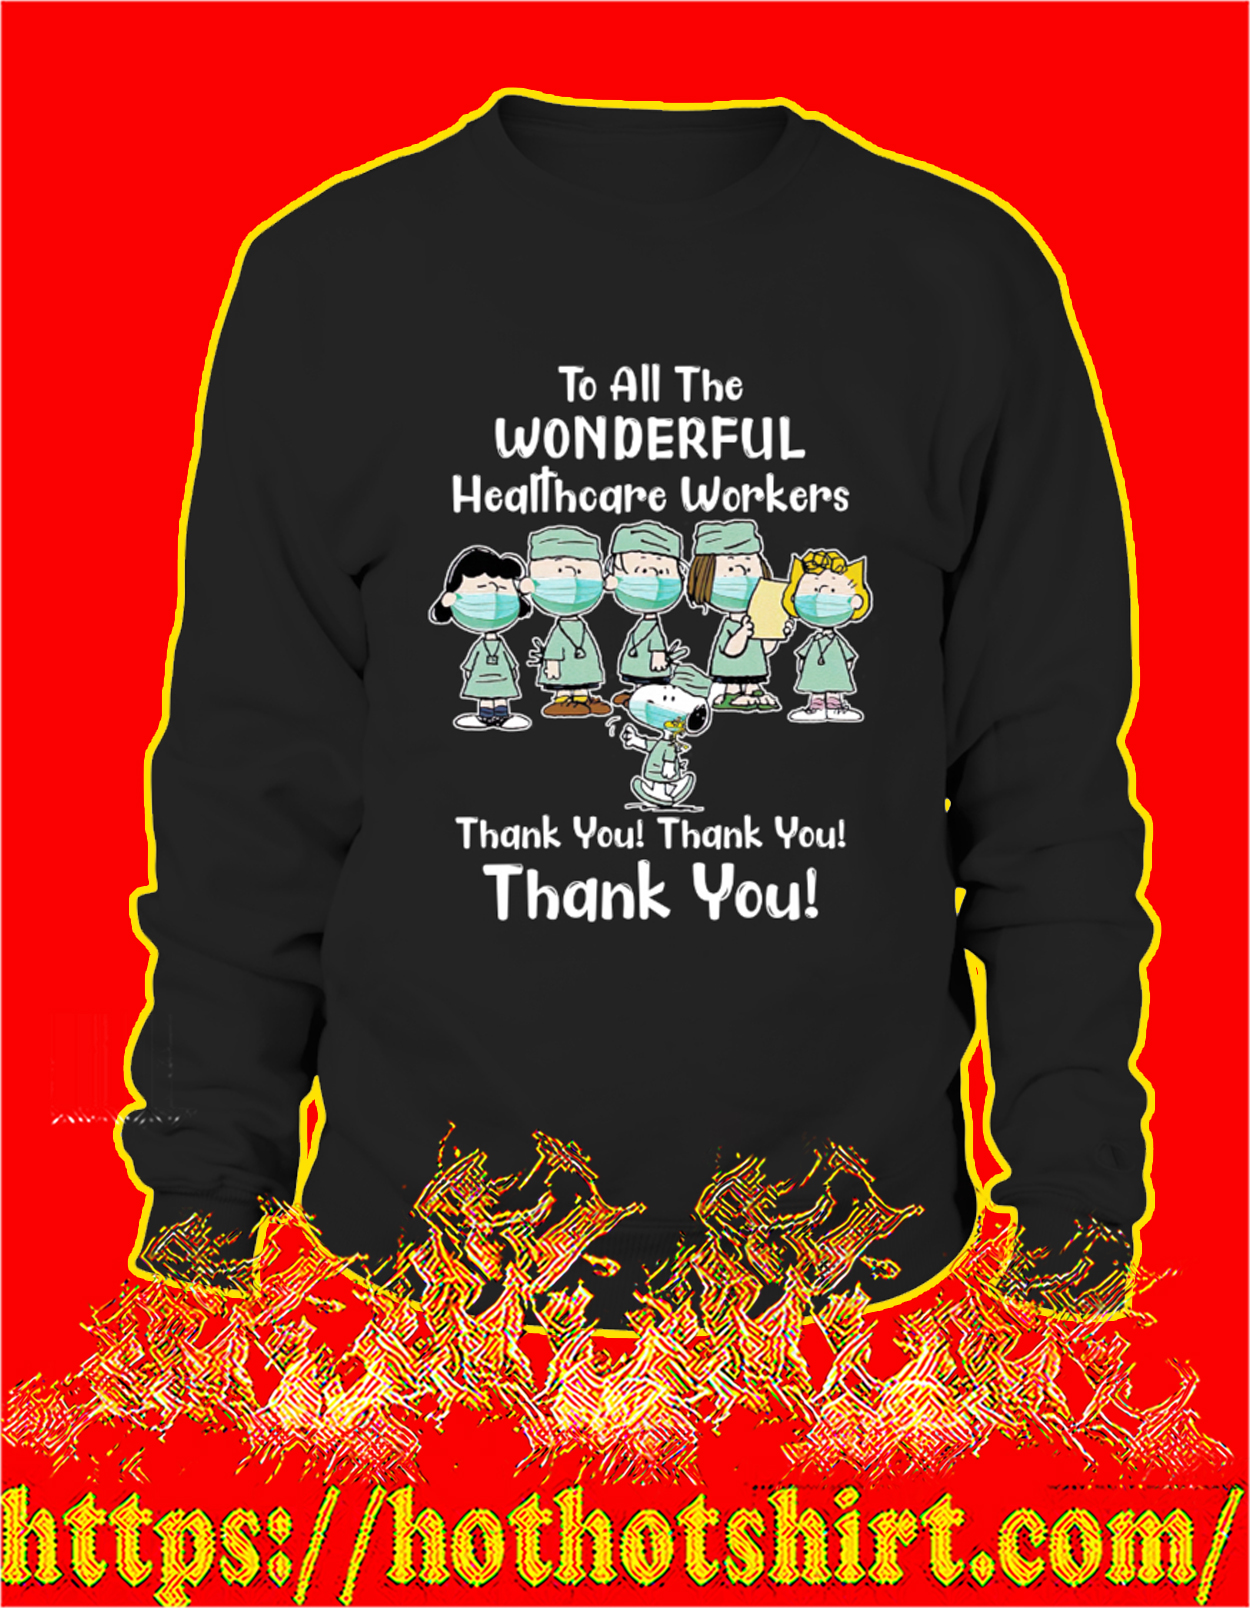 Peanuts snoopy to all the wonderful healthcare workers thank you sweatshirt